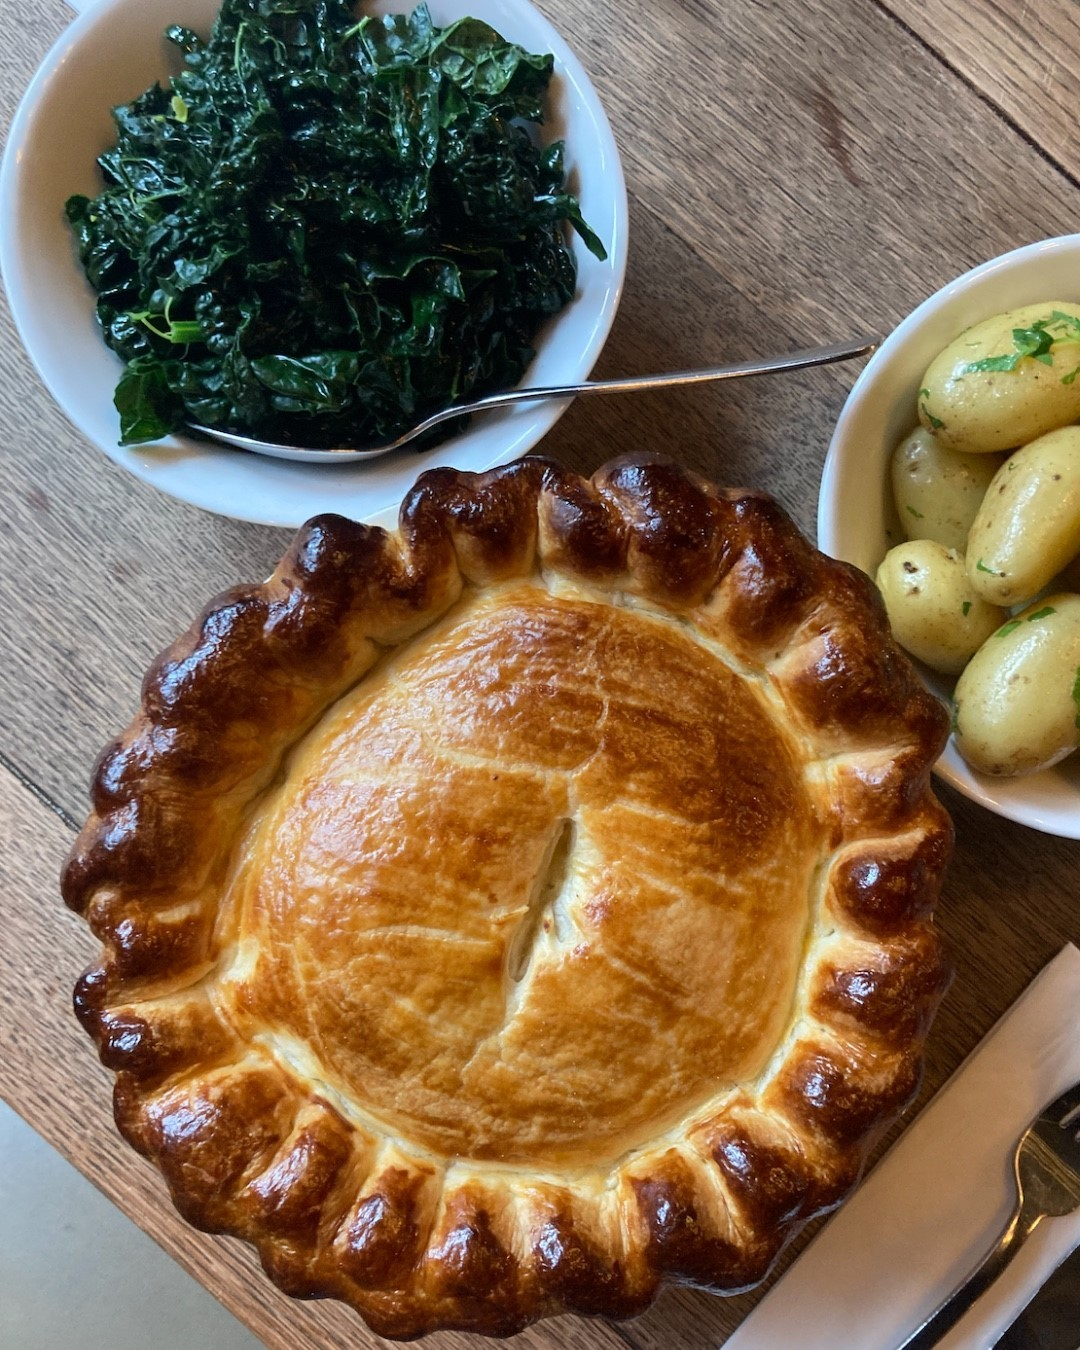 PIES FOR FRIDAYS!   Highgate, we know what you really want this evening... it's to tuck into one of our hearty chicken pies! The wholesome way to settle into autumn's chillier evenings!  Served with pink fir potatoes and cavolo nero, £29.50...perfect for sharing with a loved one!  Tables available tonight, give us a ring if you'd like to book!  #treatyourself #gardendining #northlondon #highgate #hampstead #food #foodphotography #foodstagram #foodofinstagram #foodie #foodporn #instafood #foodphotography #yummy #foodstagram #foodblogger #homemade #delicious #foodlover #restaurant #lunch #dinner #cooking #foodies #tasty #foodpics #foodgasm #chef #eat #yum